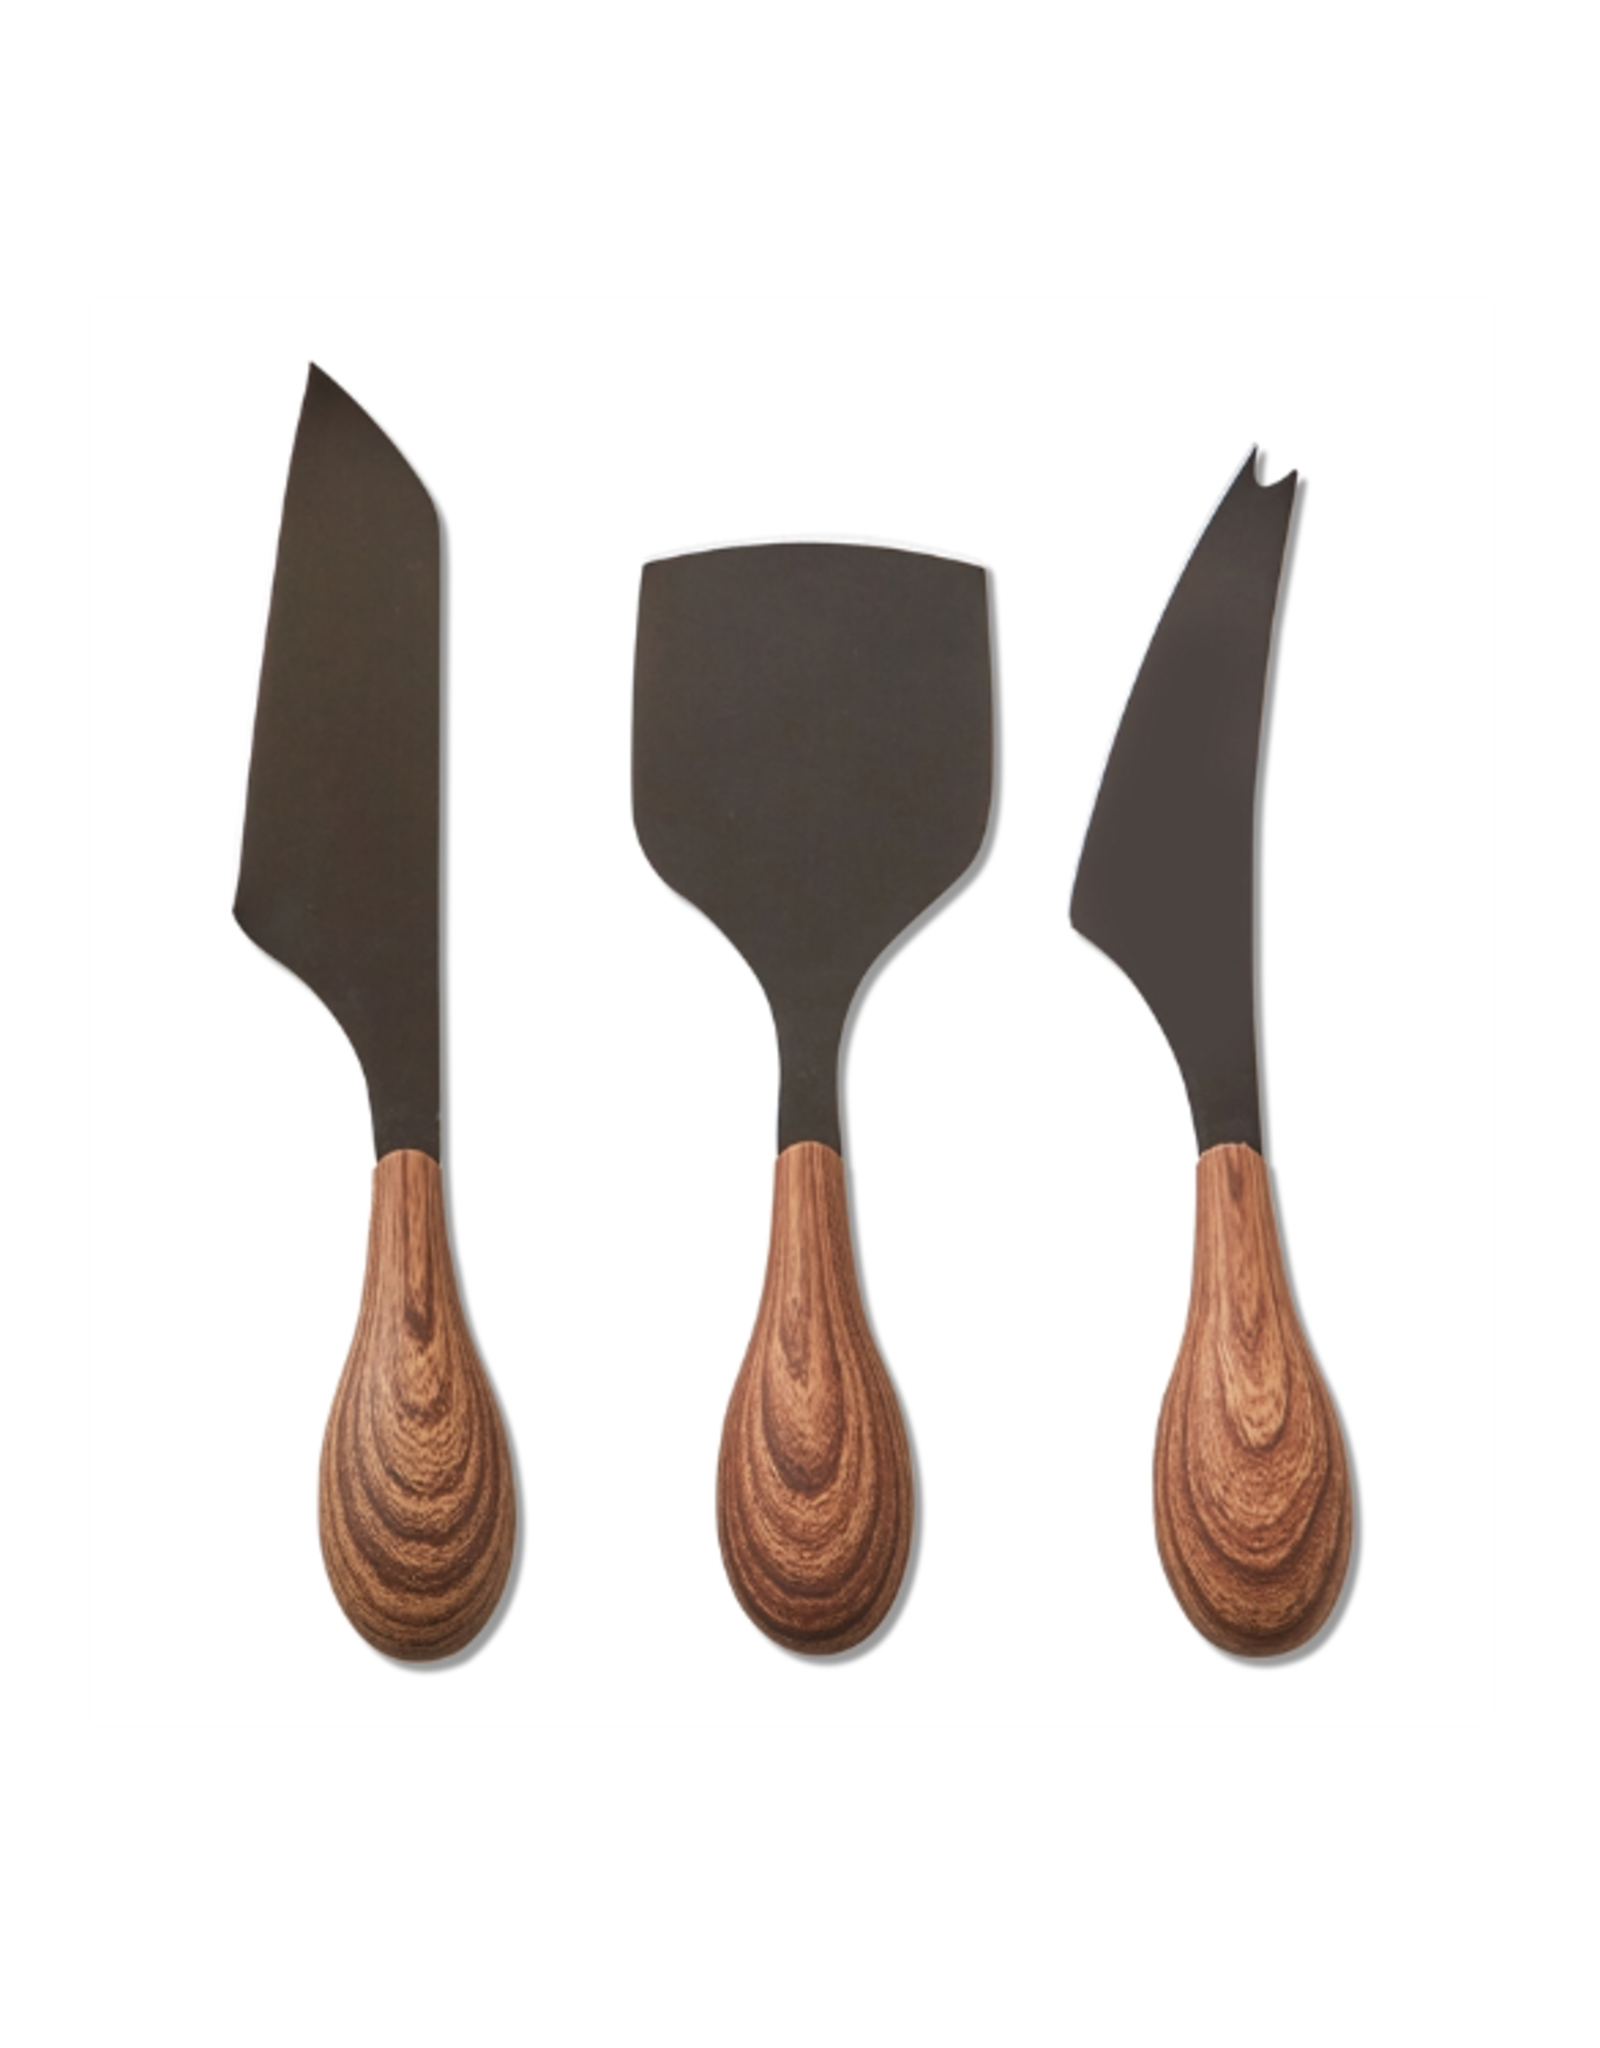 Tag Cheese Utensil S/3 - Wood Handle